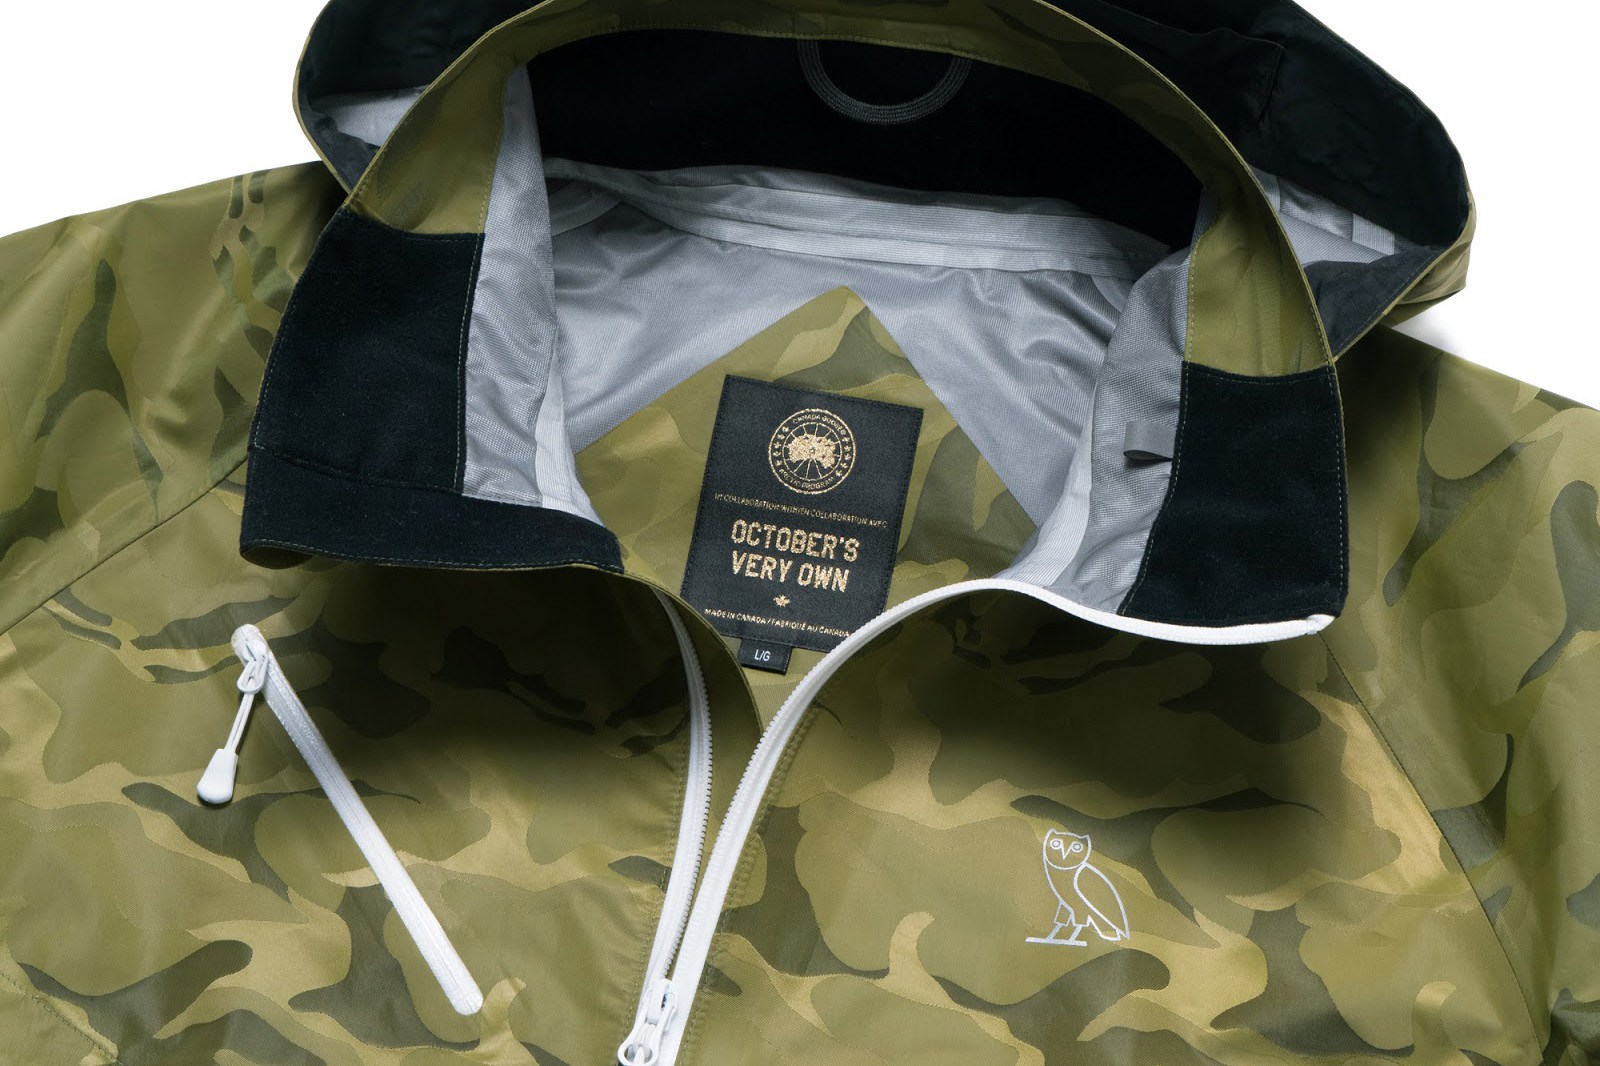 octobers-very-own-canada-goose-collaboration-1